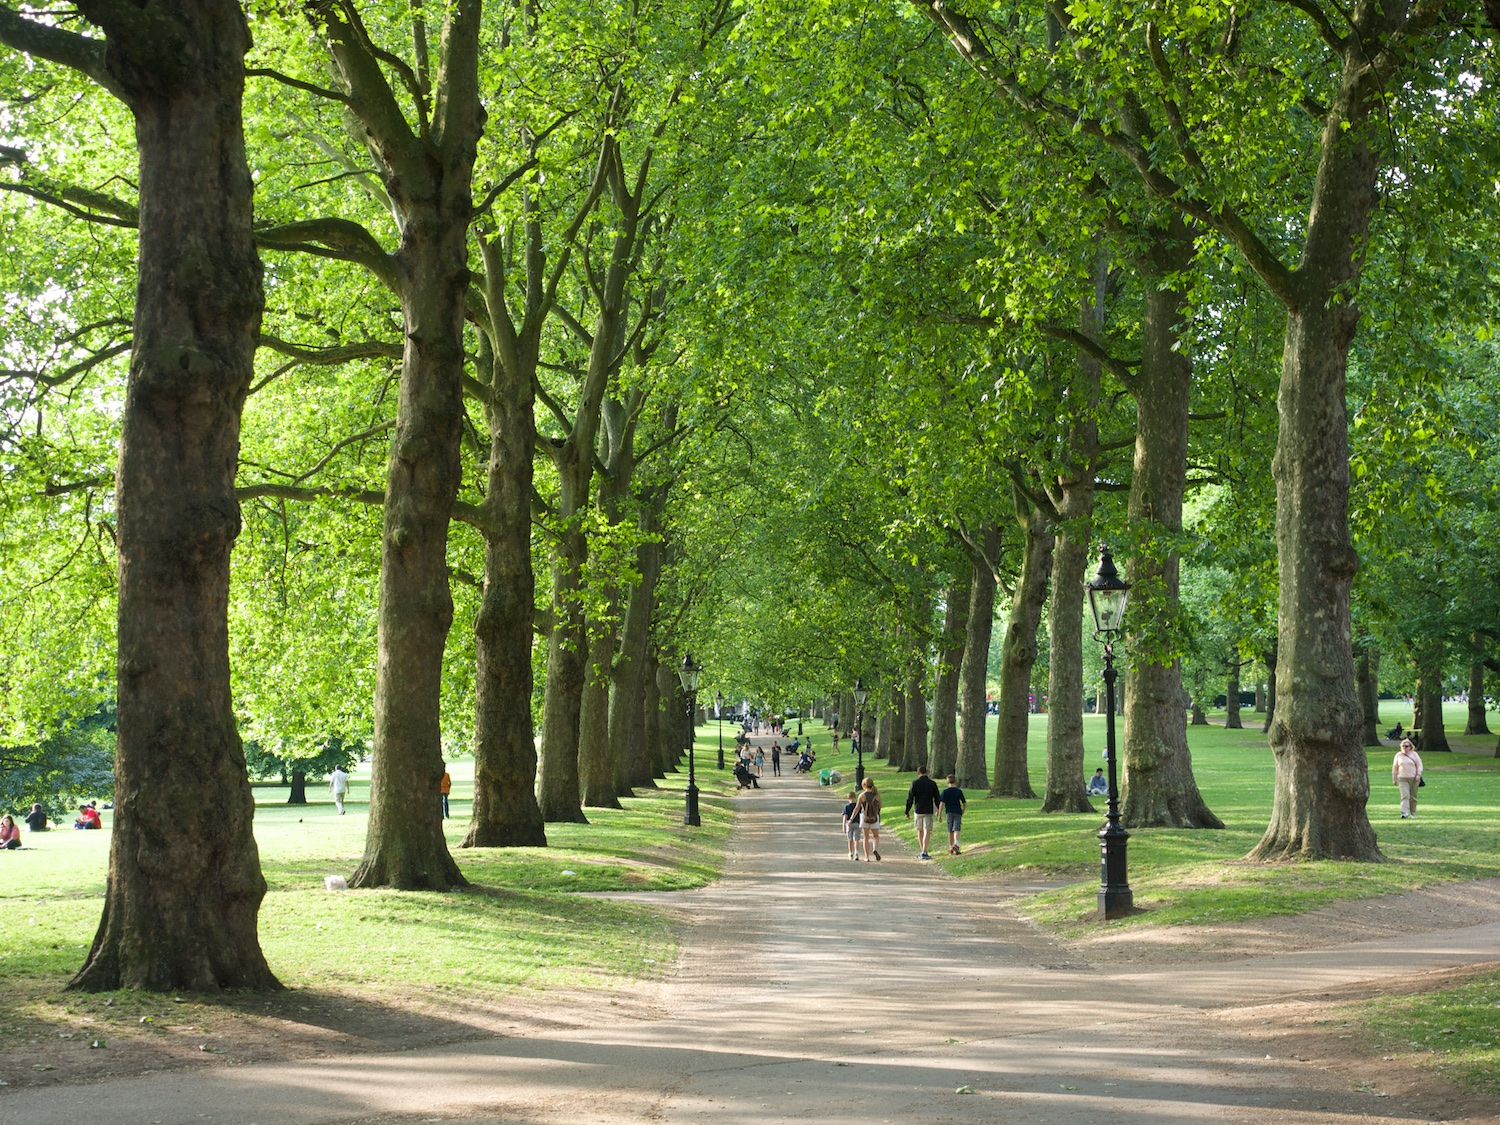 Plane trees in Green Park